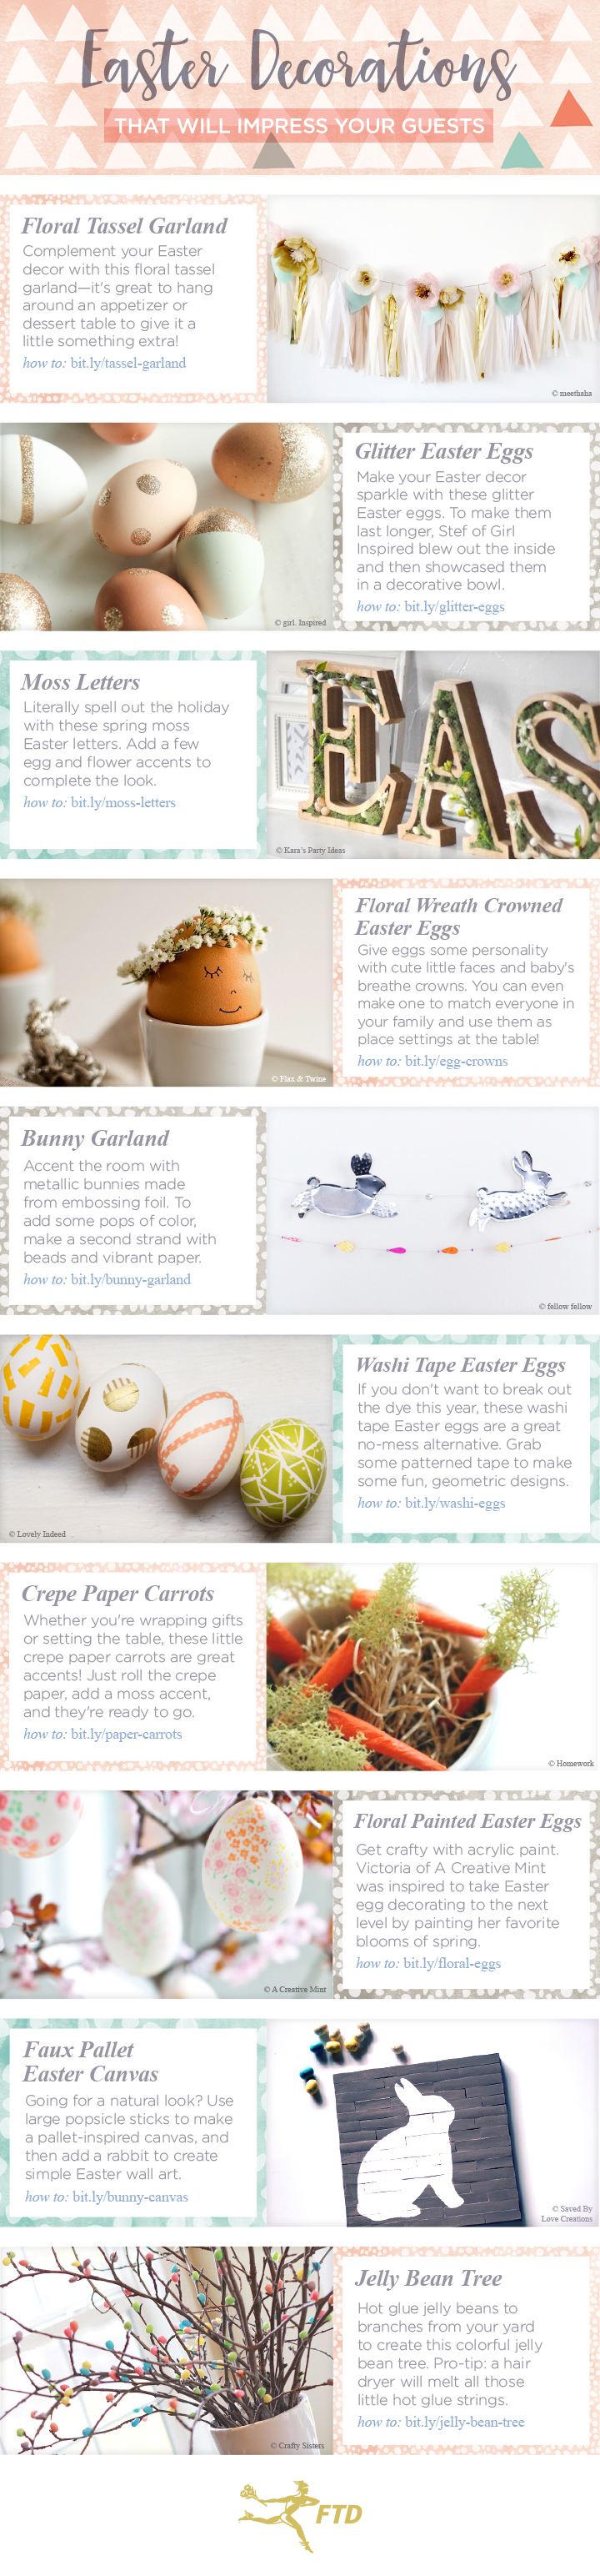 Easter Decorations That Will Impress Your Guests